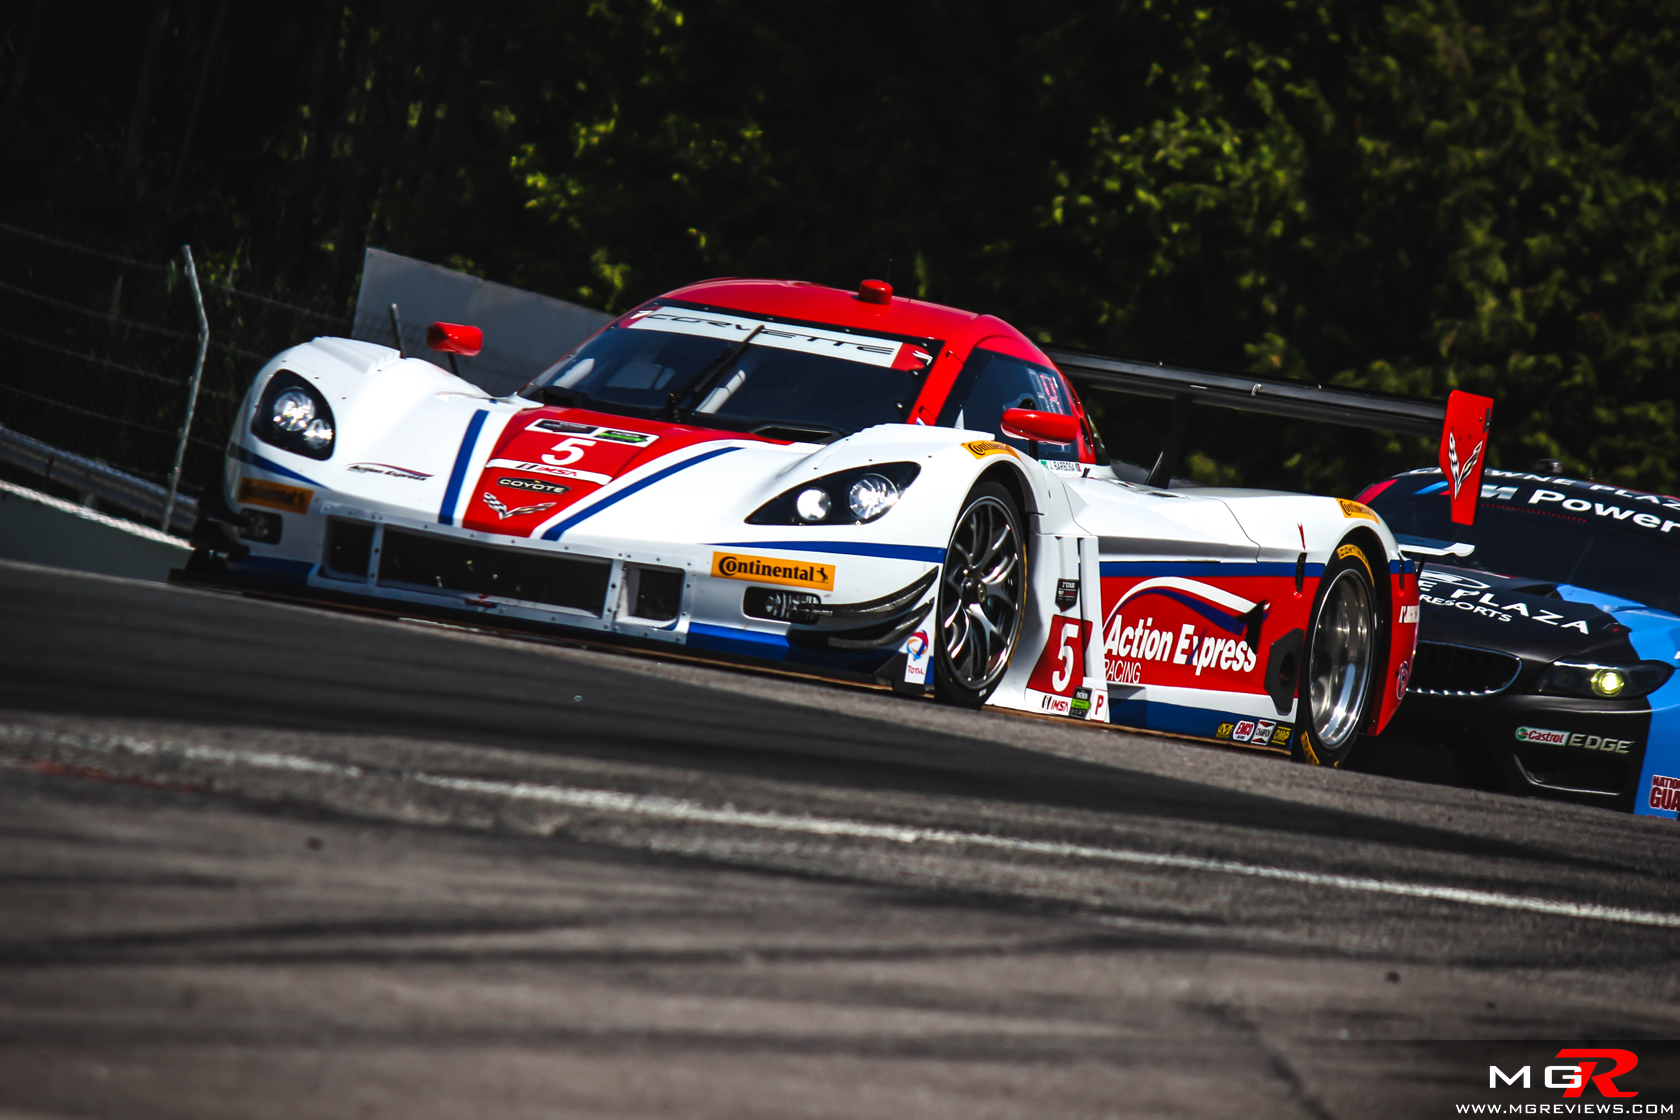 photos 2014 imsa tudor united sports car series part 1 \u2013 practice2014 tudor united sports car series 38 copy